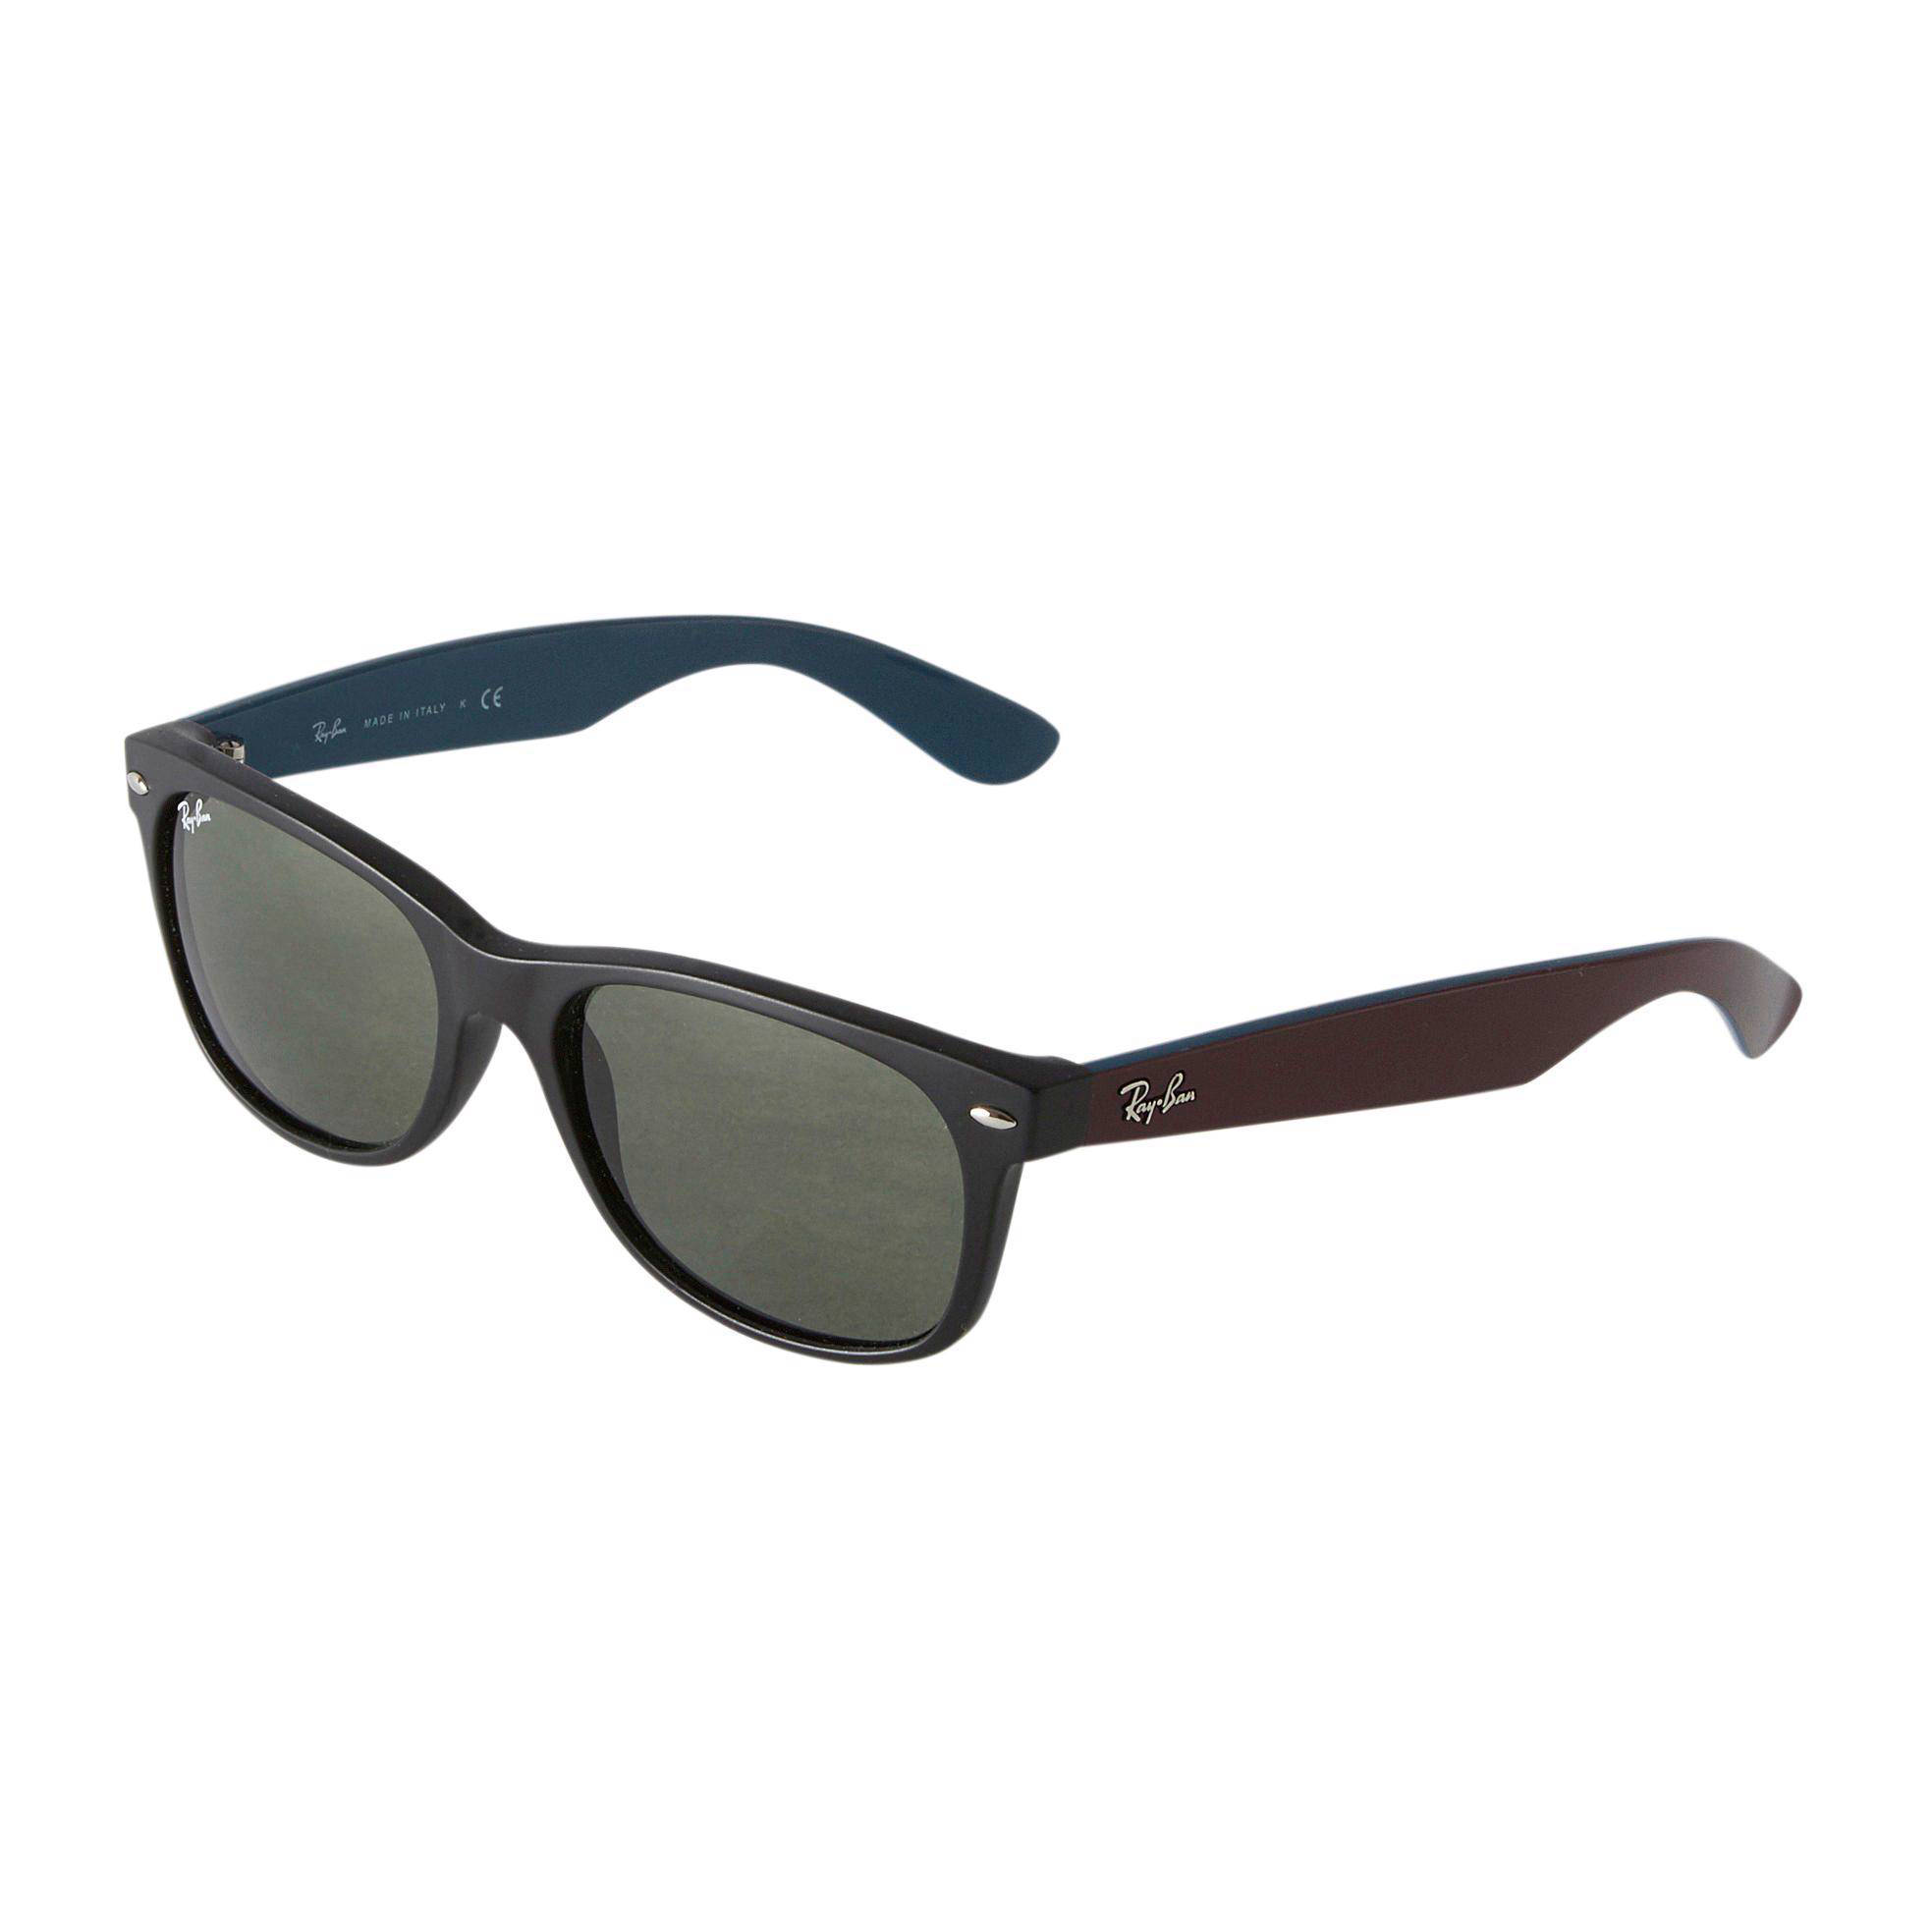 f886c621656fcd Ray-Ban zonnebril 0RB2132